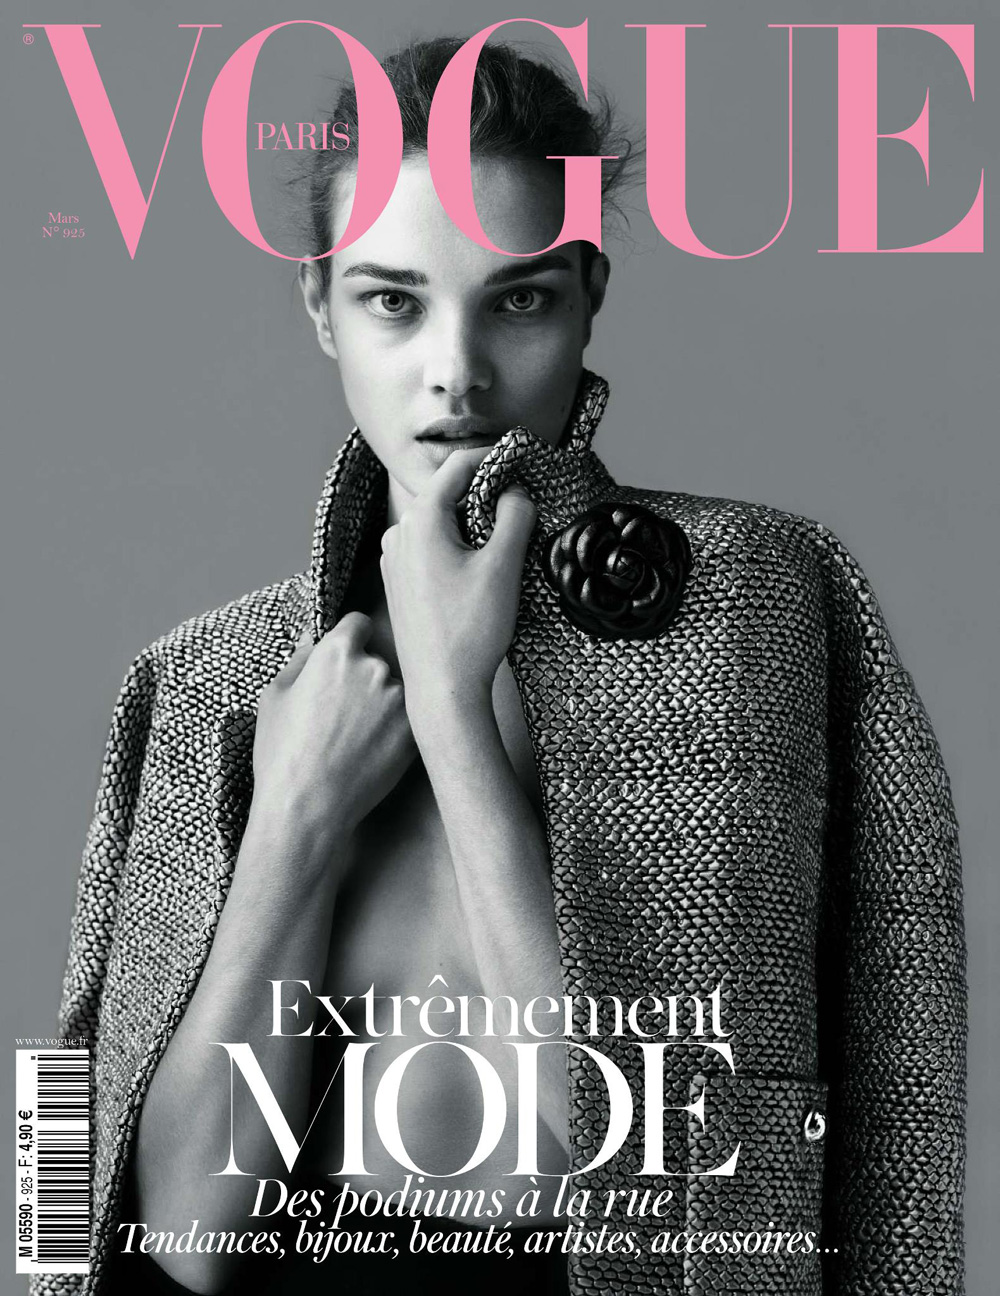 natalia vodianova for vogue paris march 2012